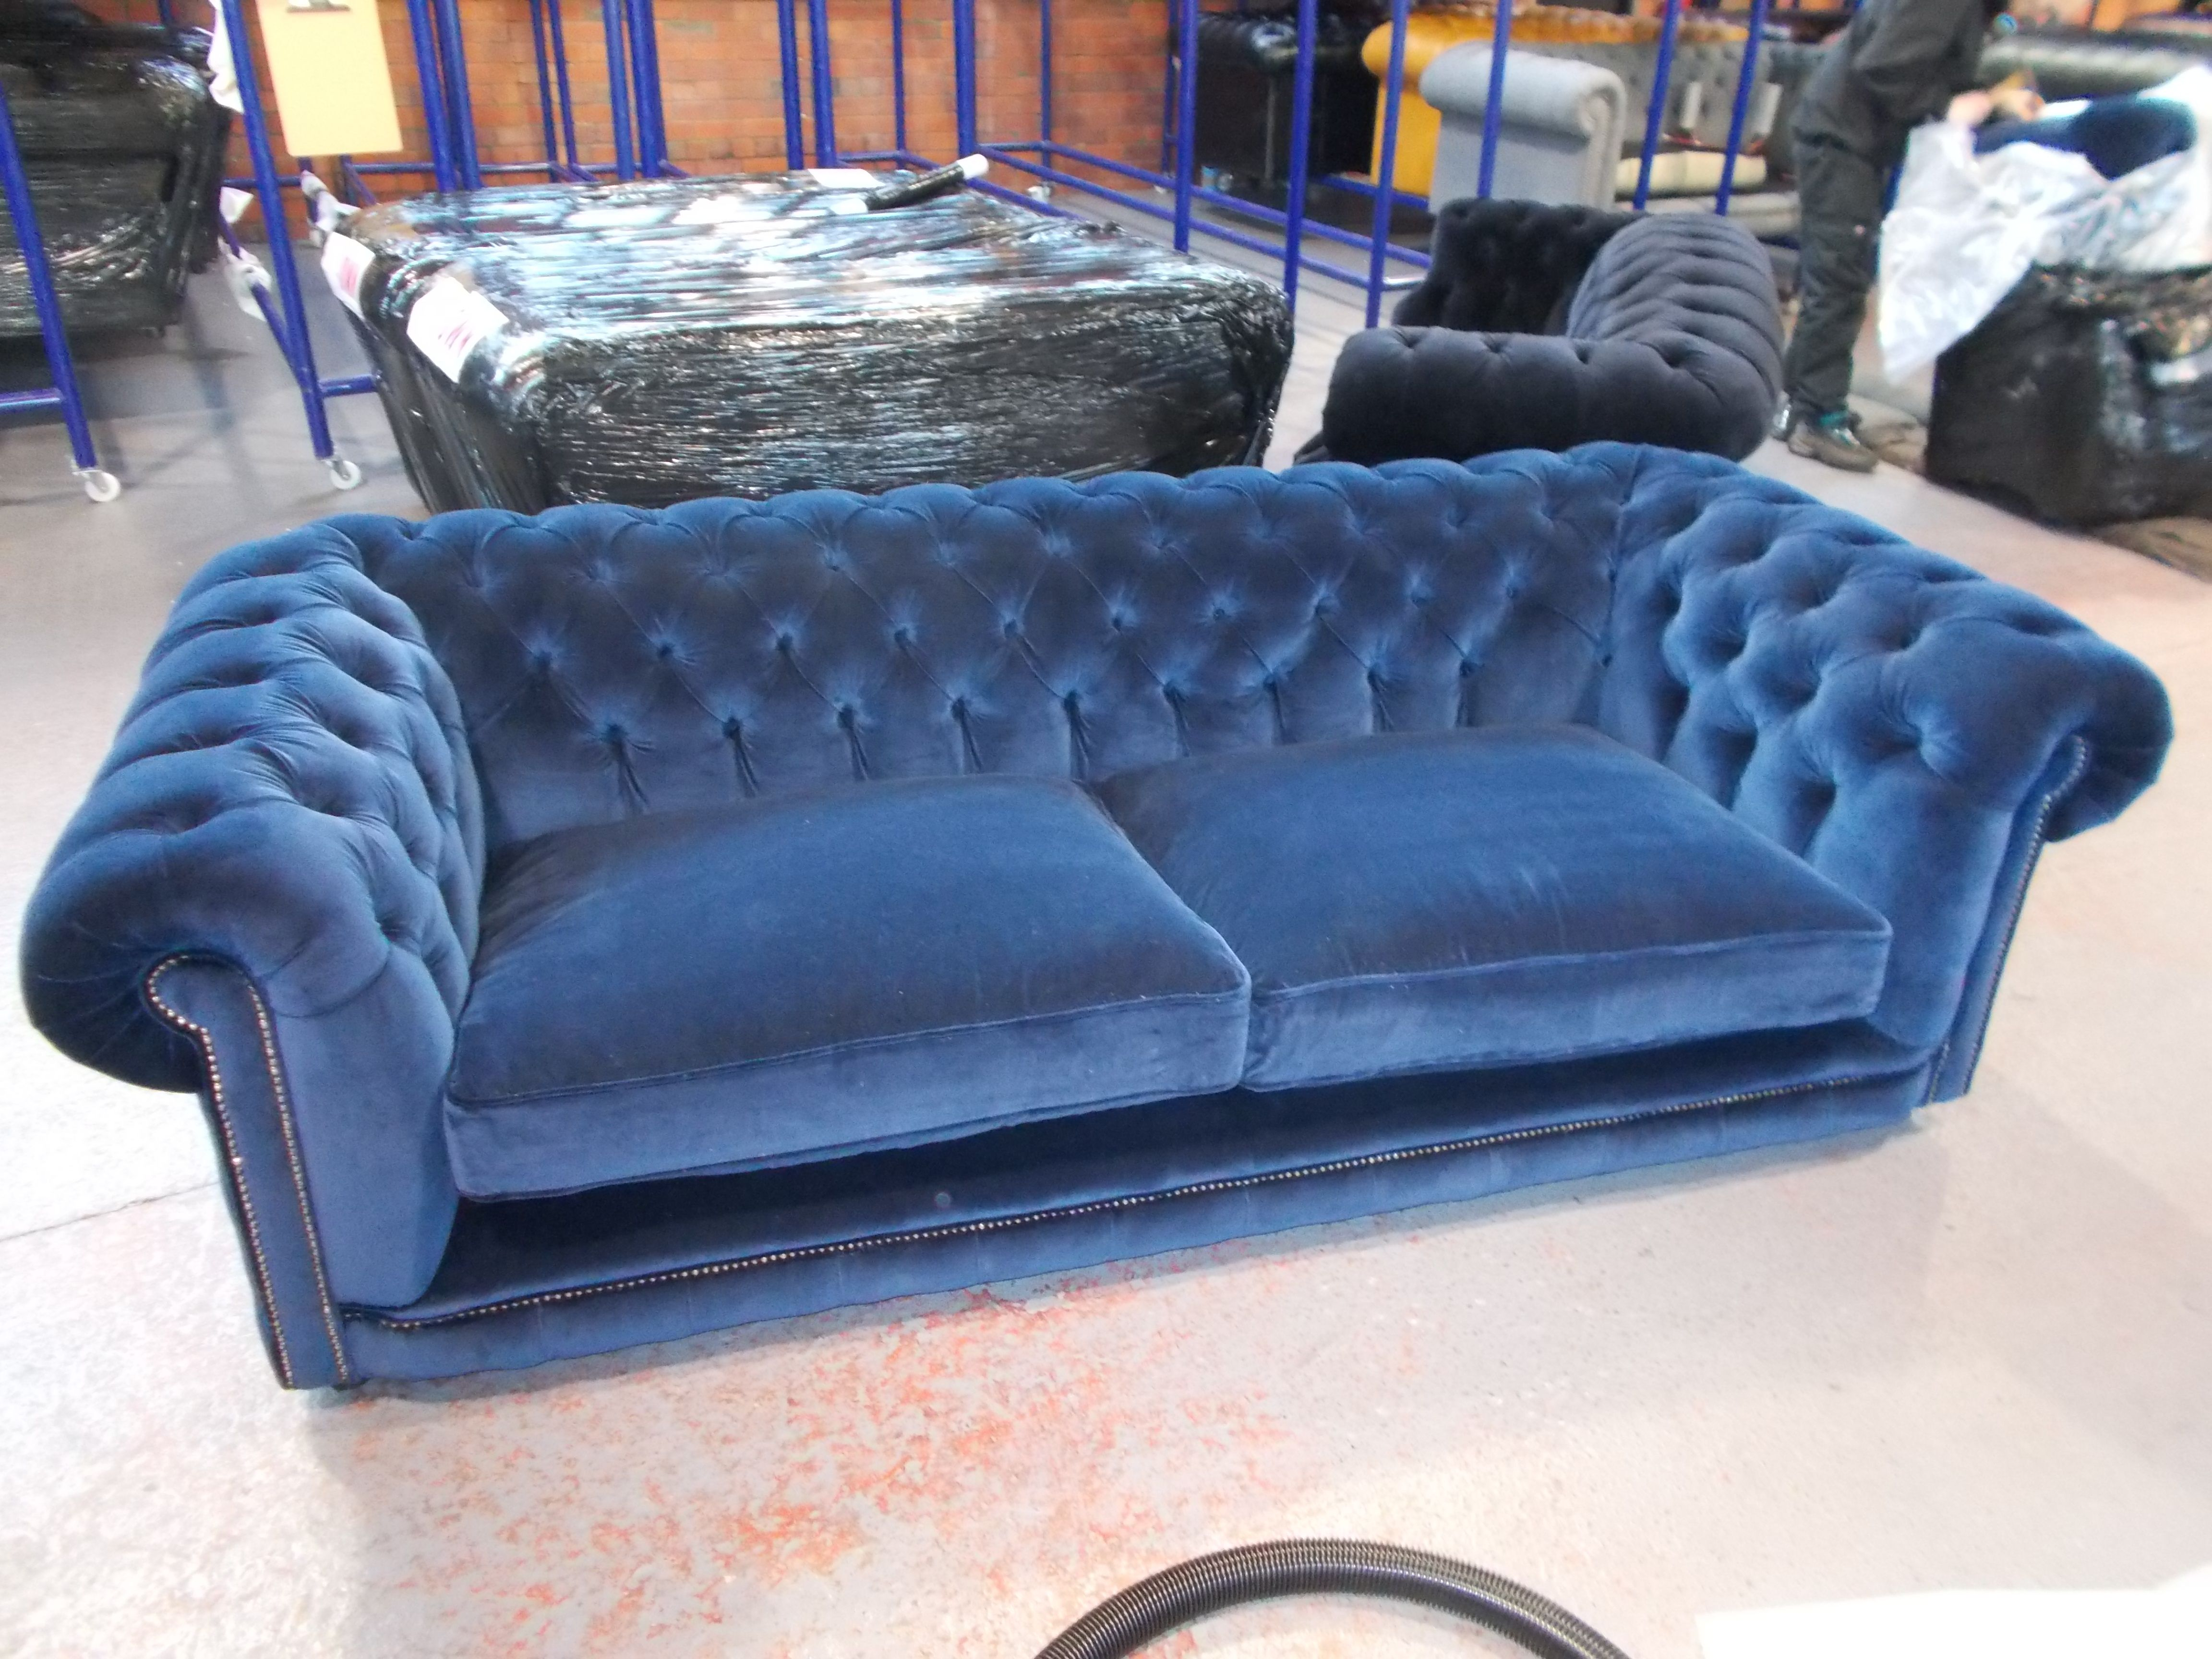 Pleasing Hampton 3 Seater Chesterfield Sofa In Blue Velvet With 2 Unemploymentrelief Wooden Chair Designs For Living Room Unemploymentrelieforg